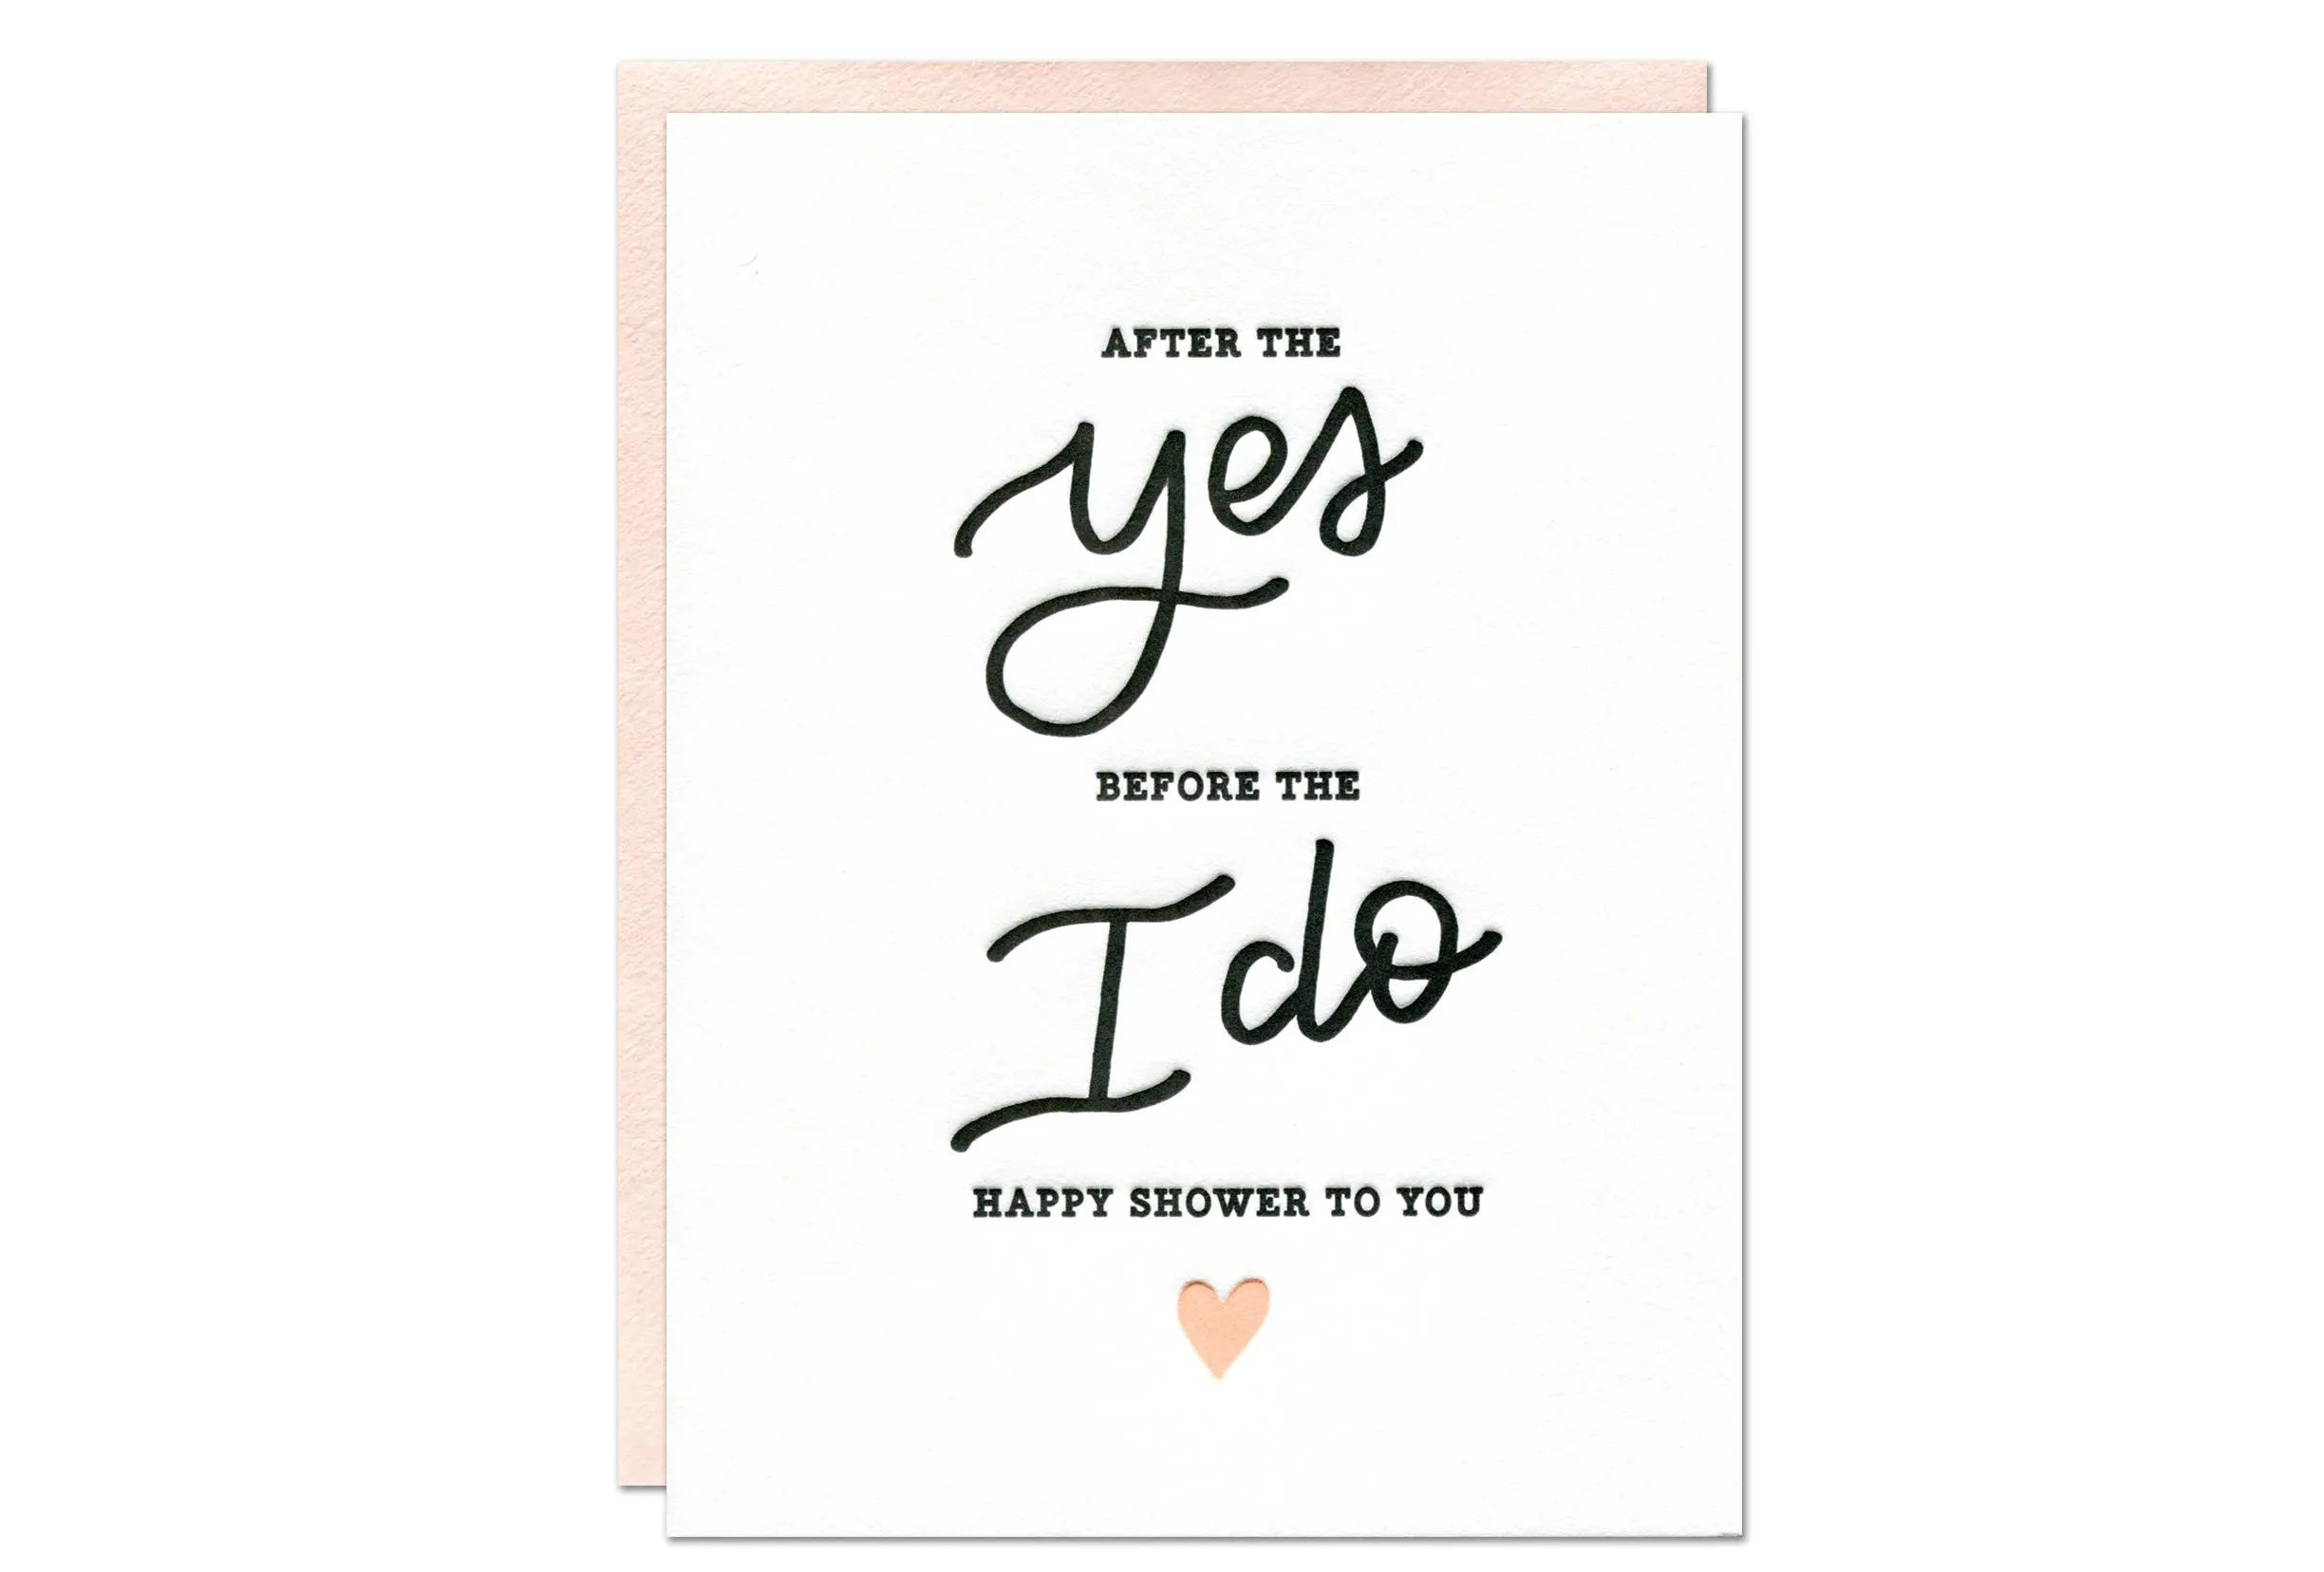 Happy Bridal Shower Card Wedding Shower Card Bride To Be